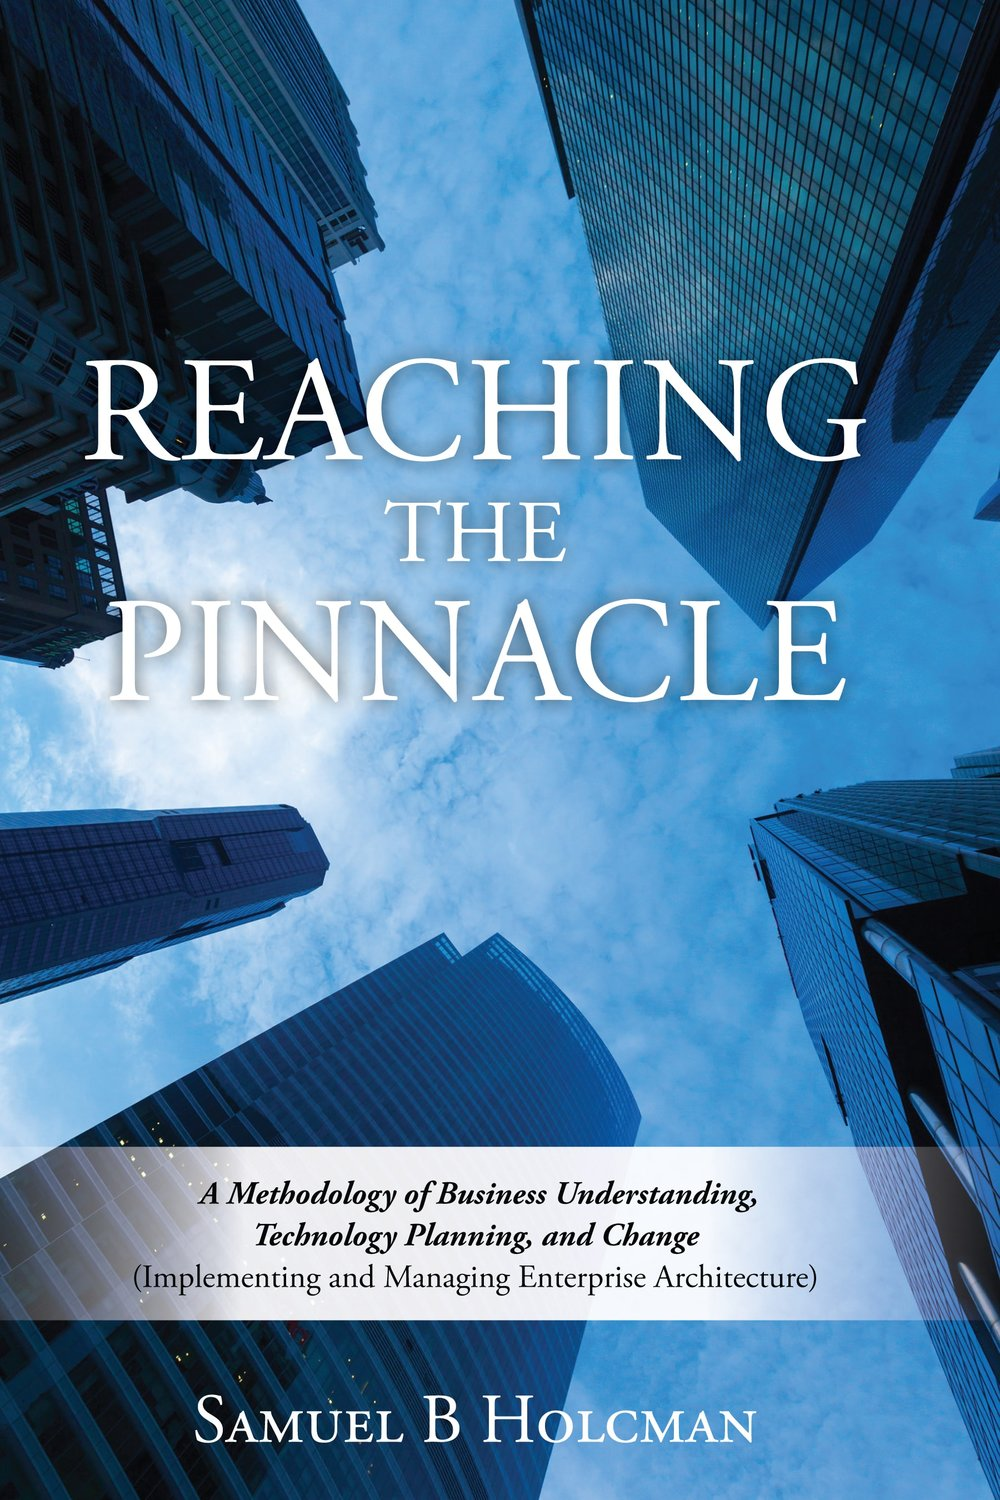 Reaching the Pinnacle frontcover_compressed.jpg